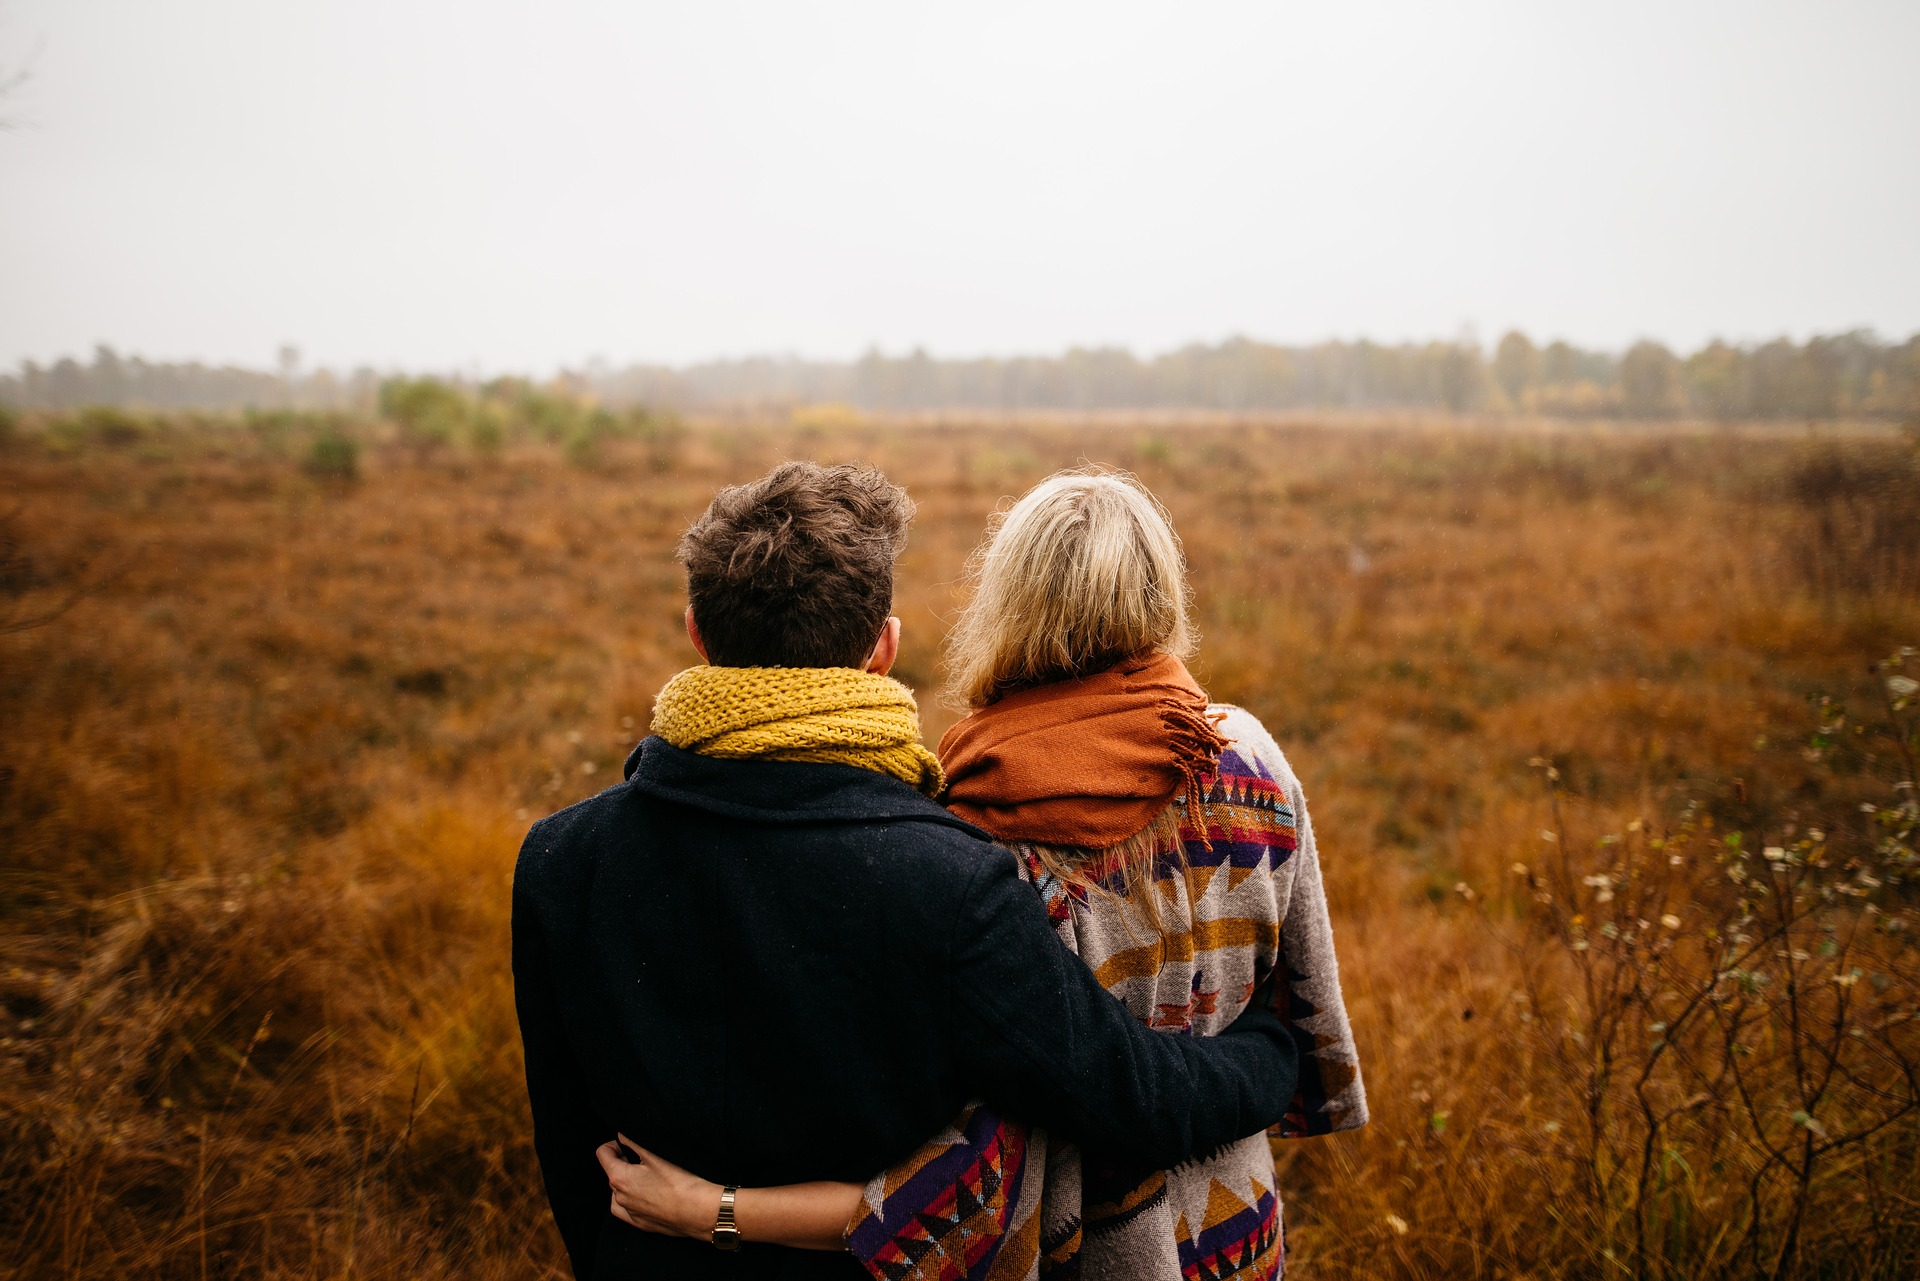 A couple are embracing. They look over a grassy field.